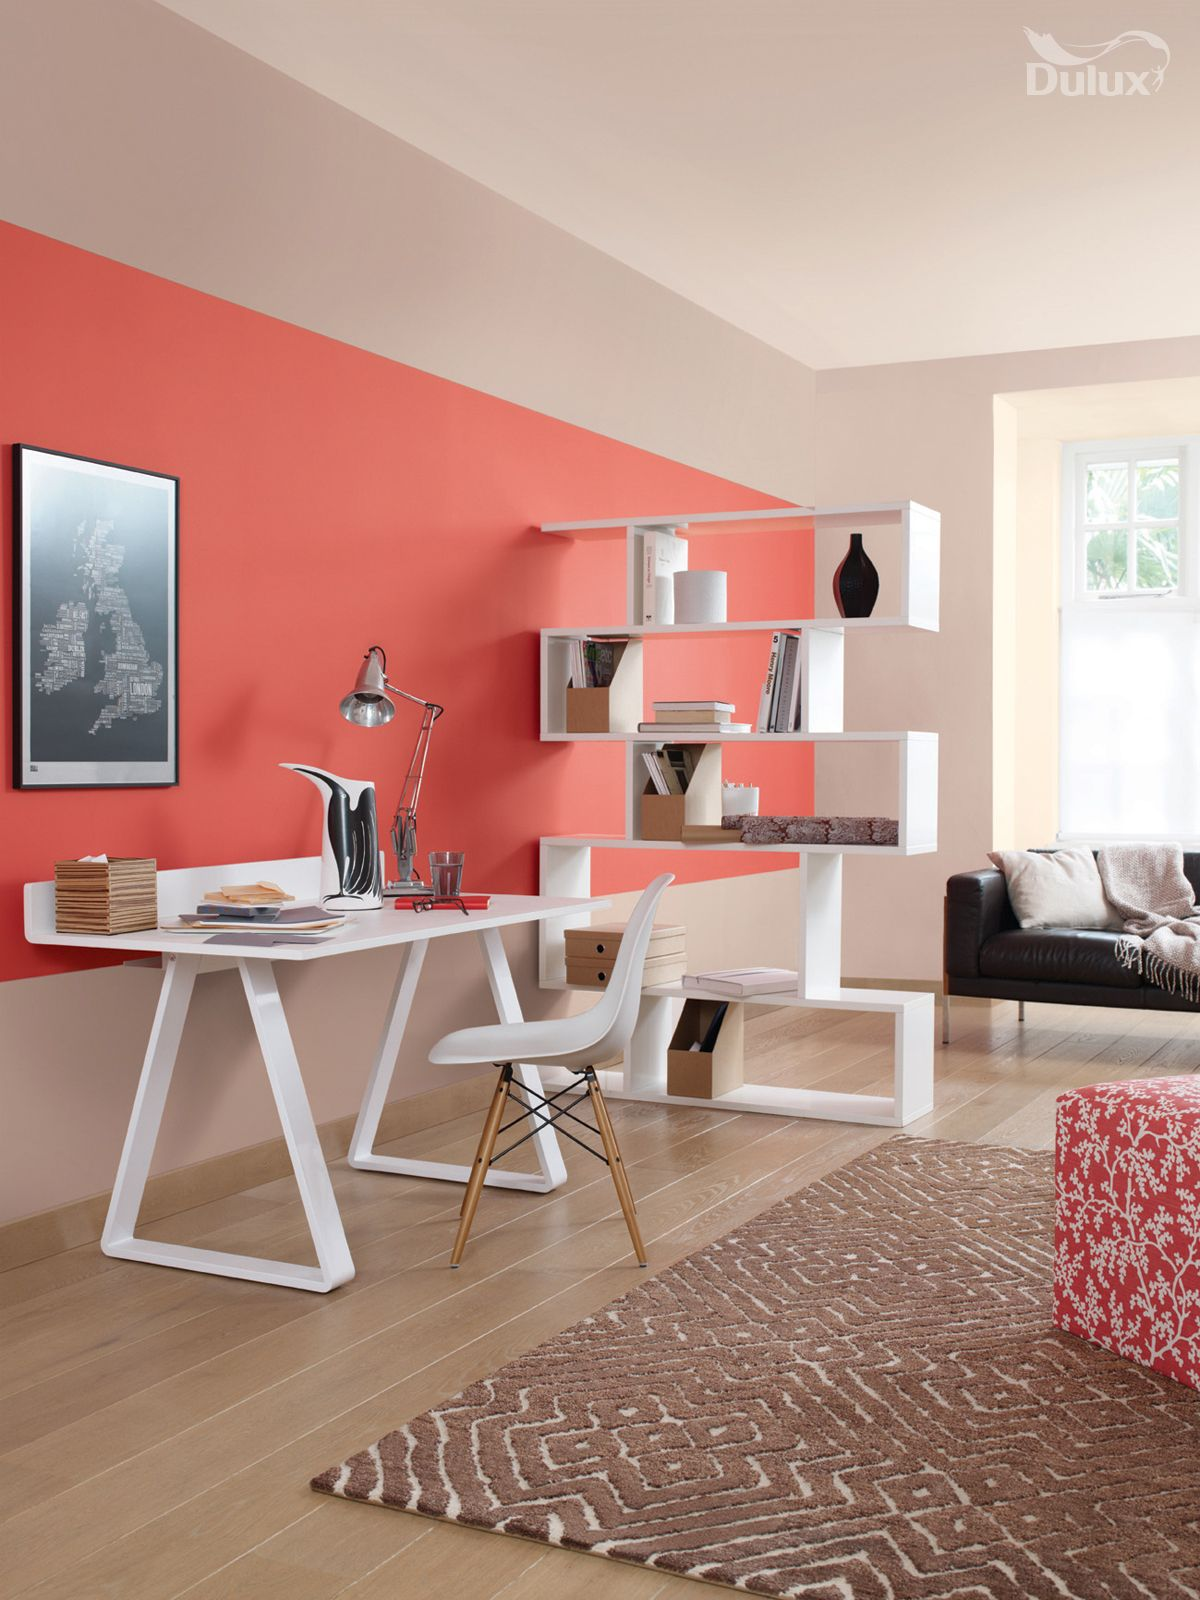 Colour For Study Room: Coral Room: Zoning Homes With An Open Plan Layout Is One